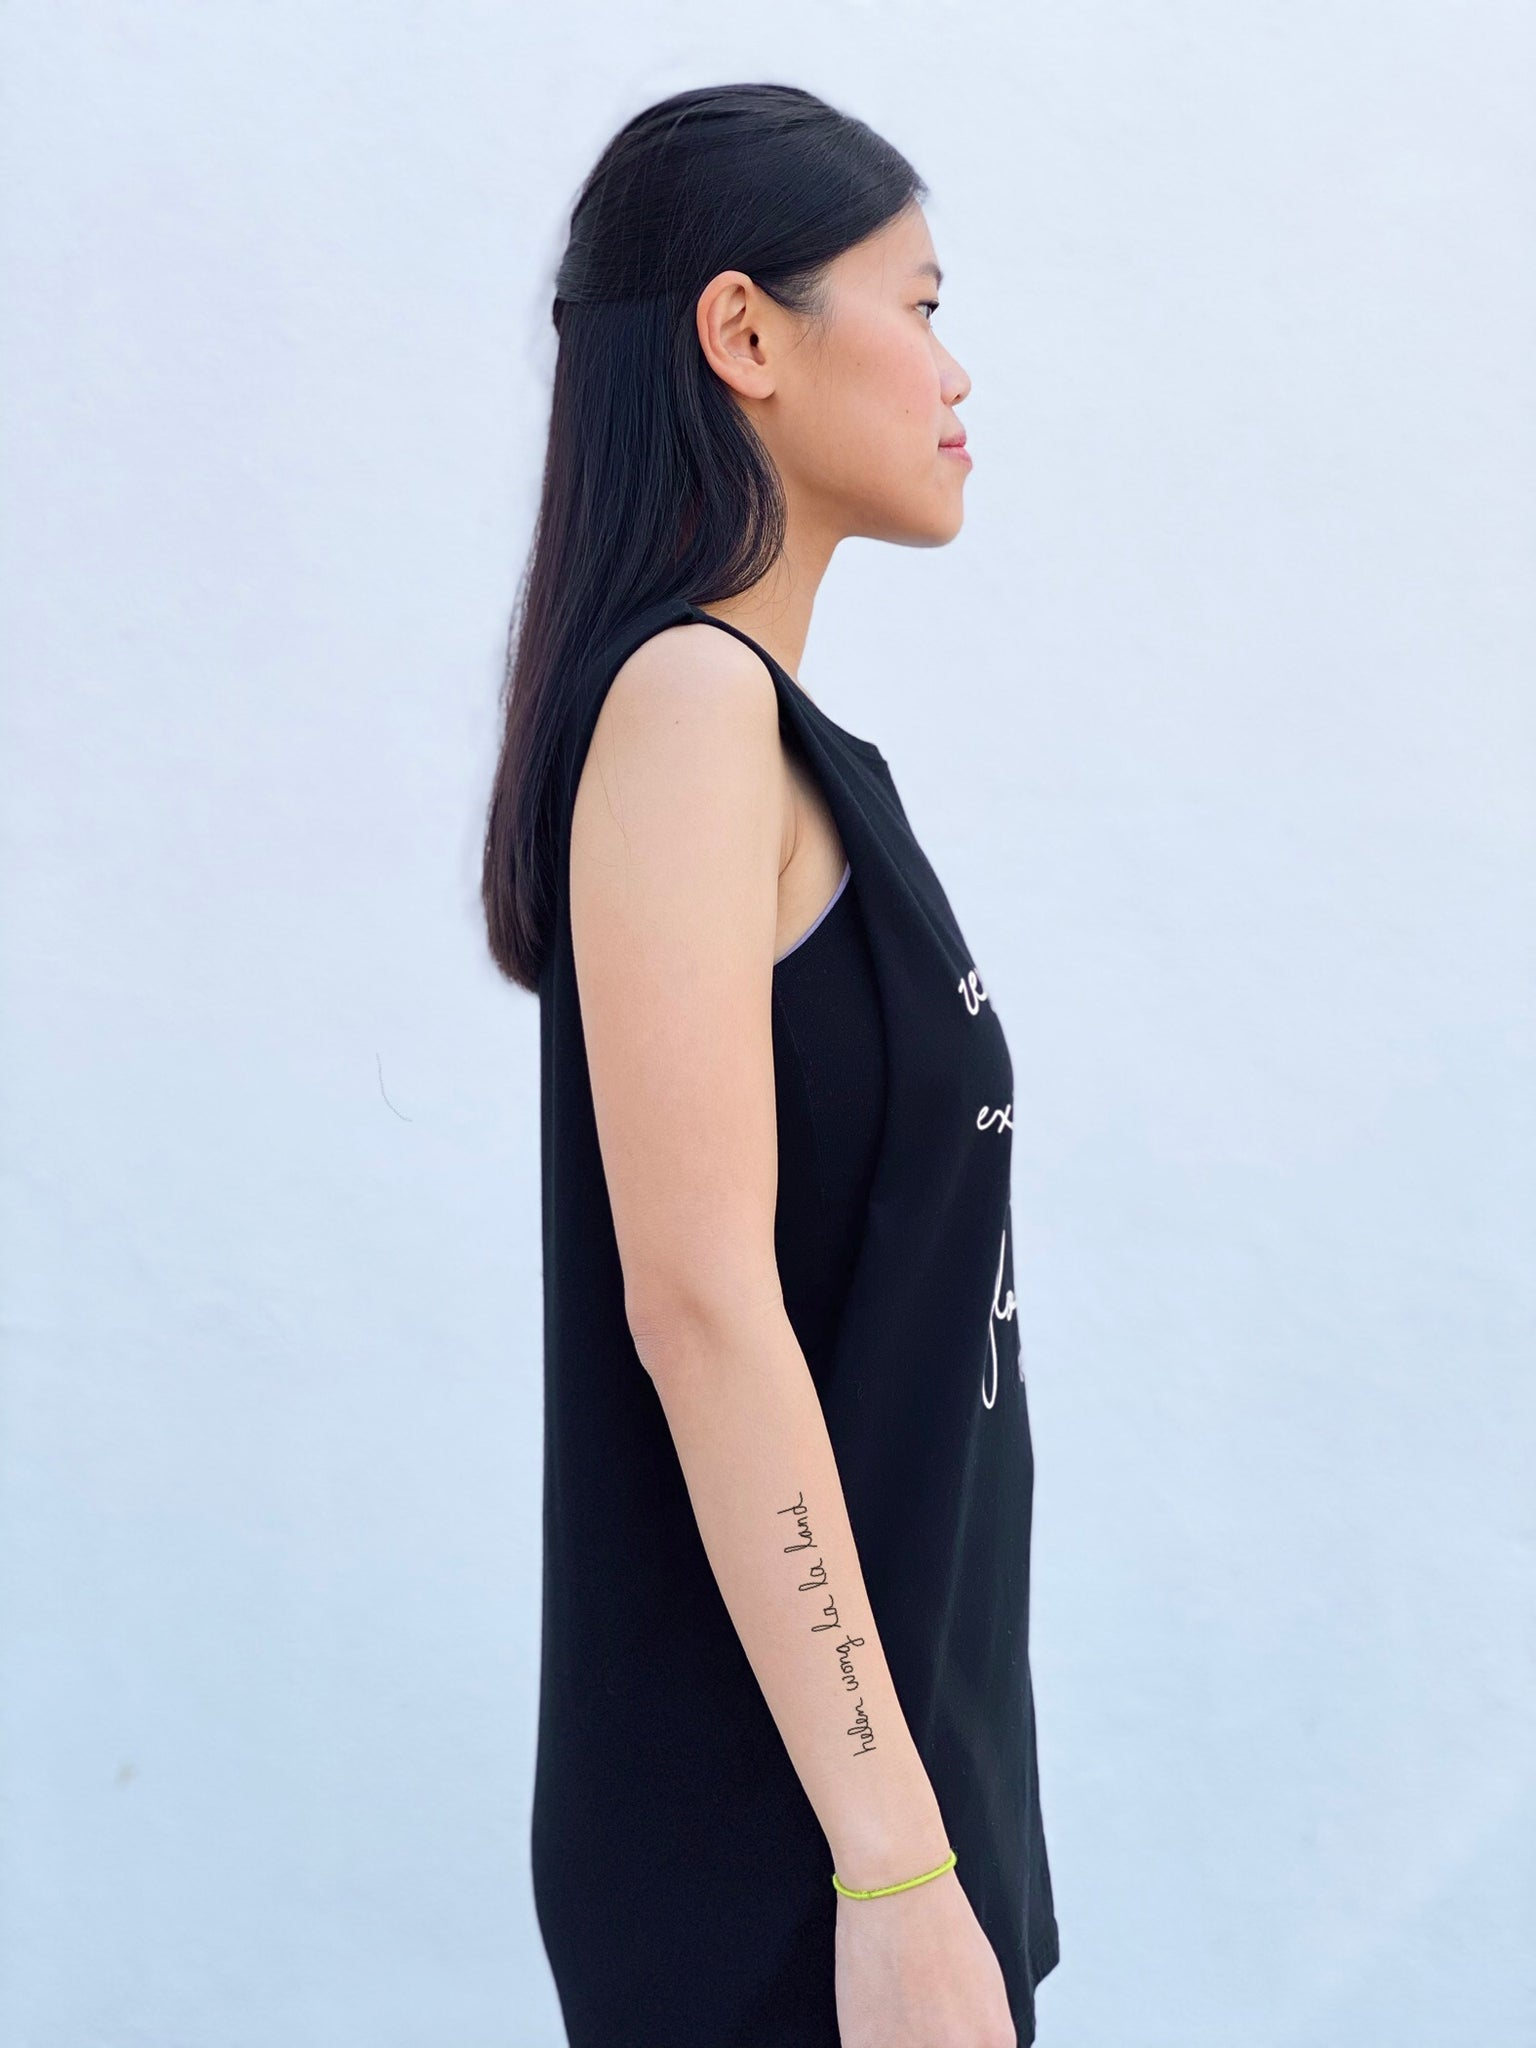 (S/S 2020) Respect Animal Existence sleeveless tee in BLACK ORGANIC m